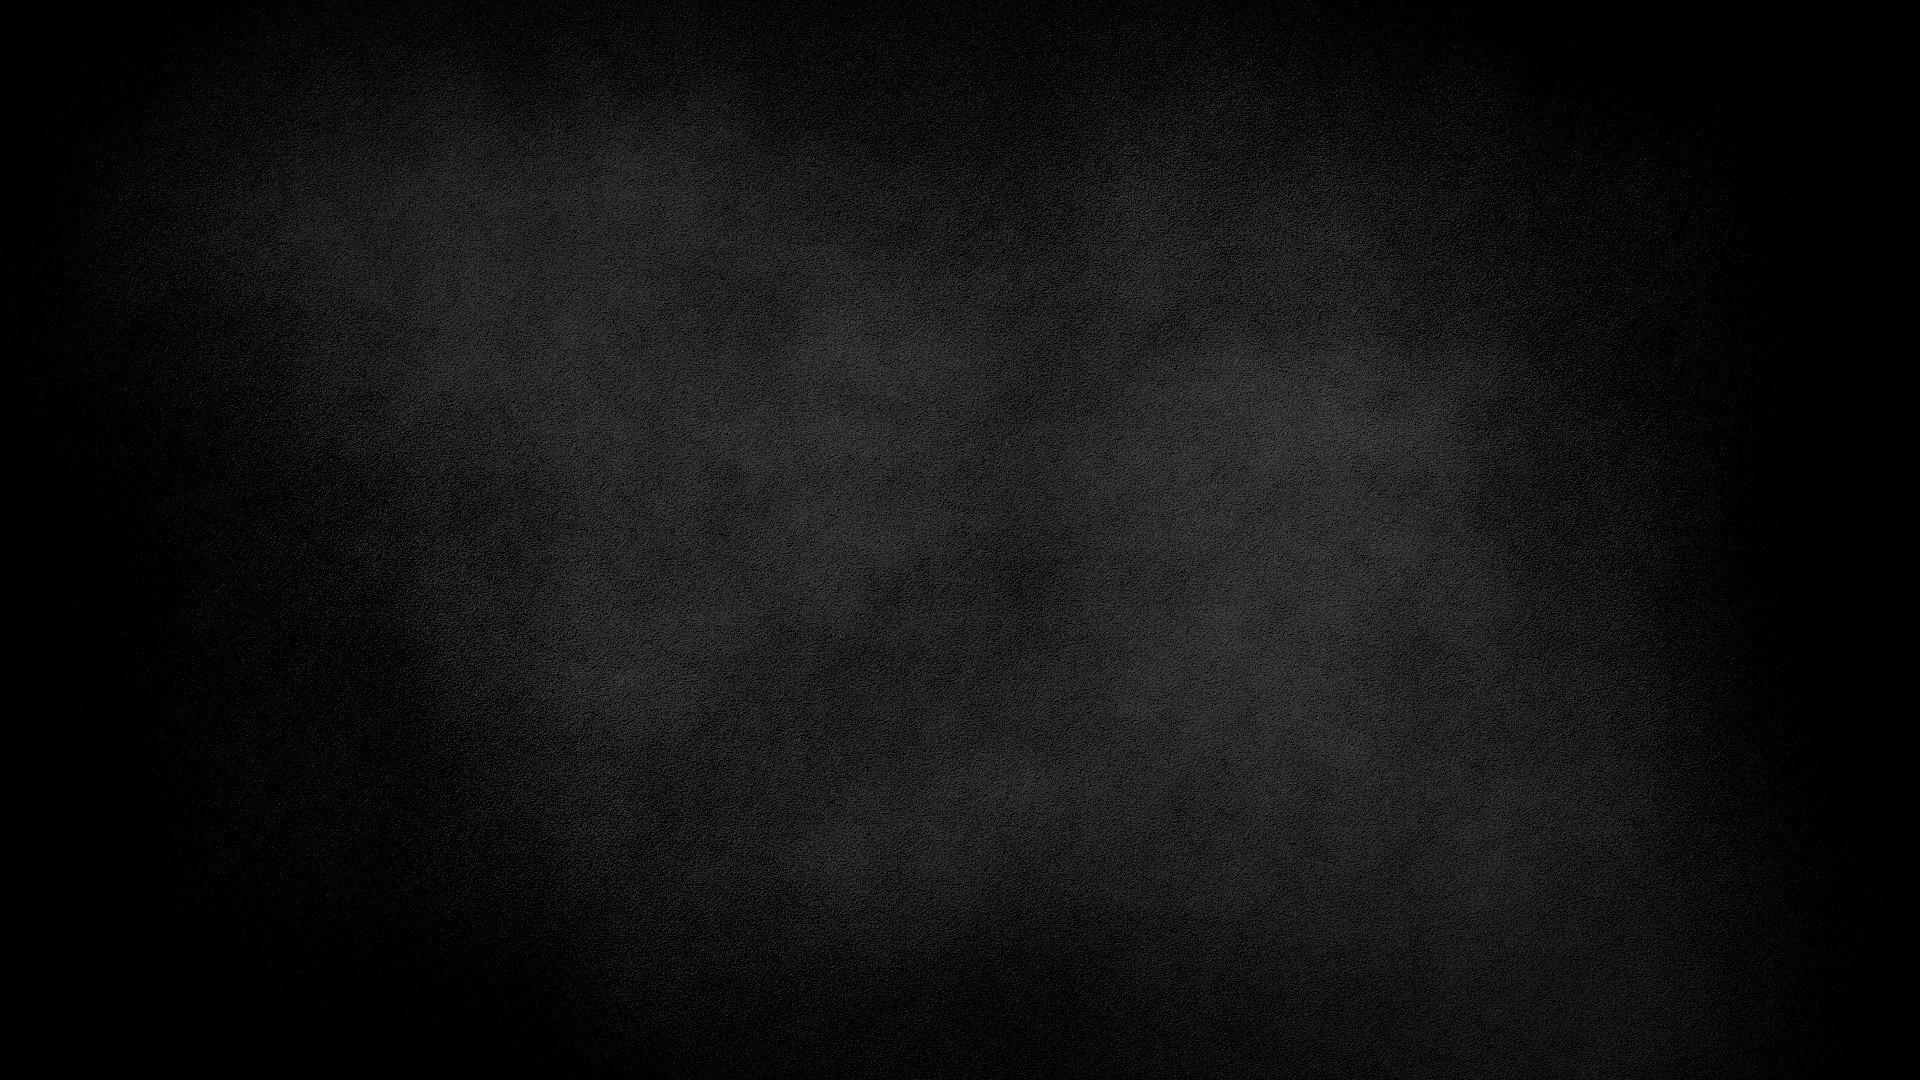 Black grunge textures wallpaper 67593 1920x1080